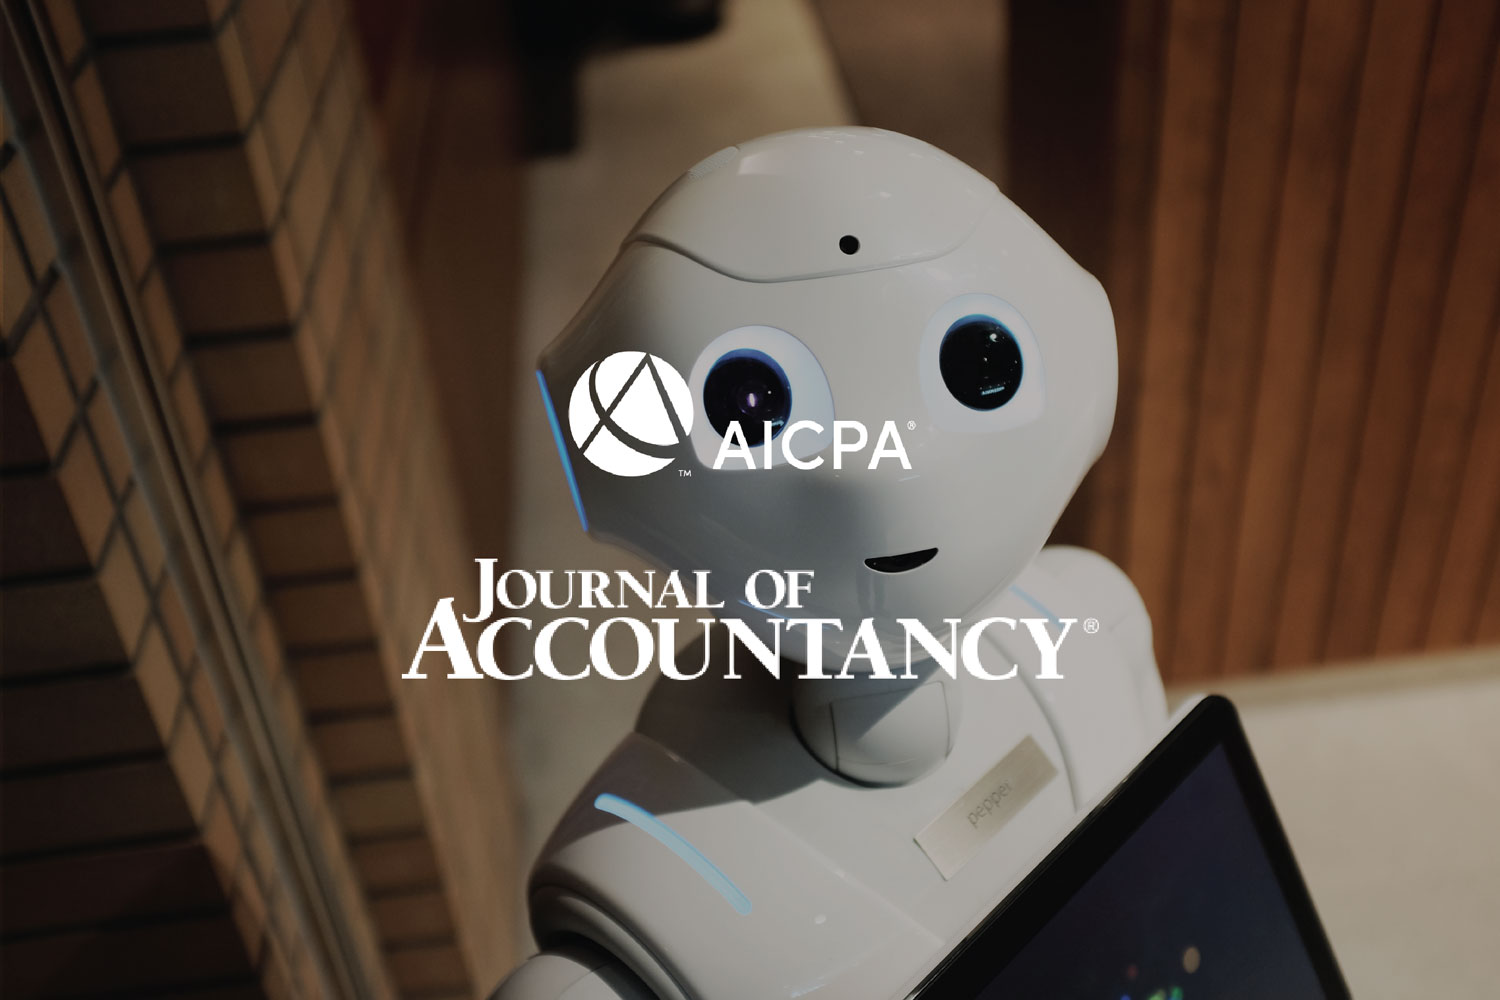 AICPA Journal of Accountancy Newsletter